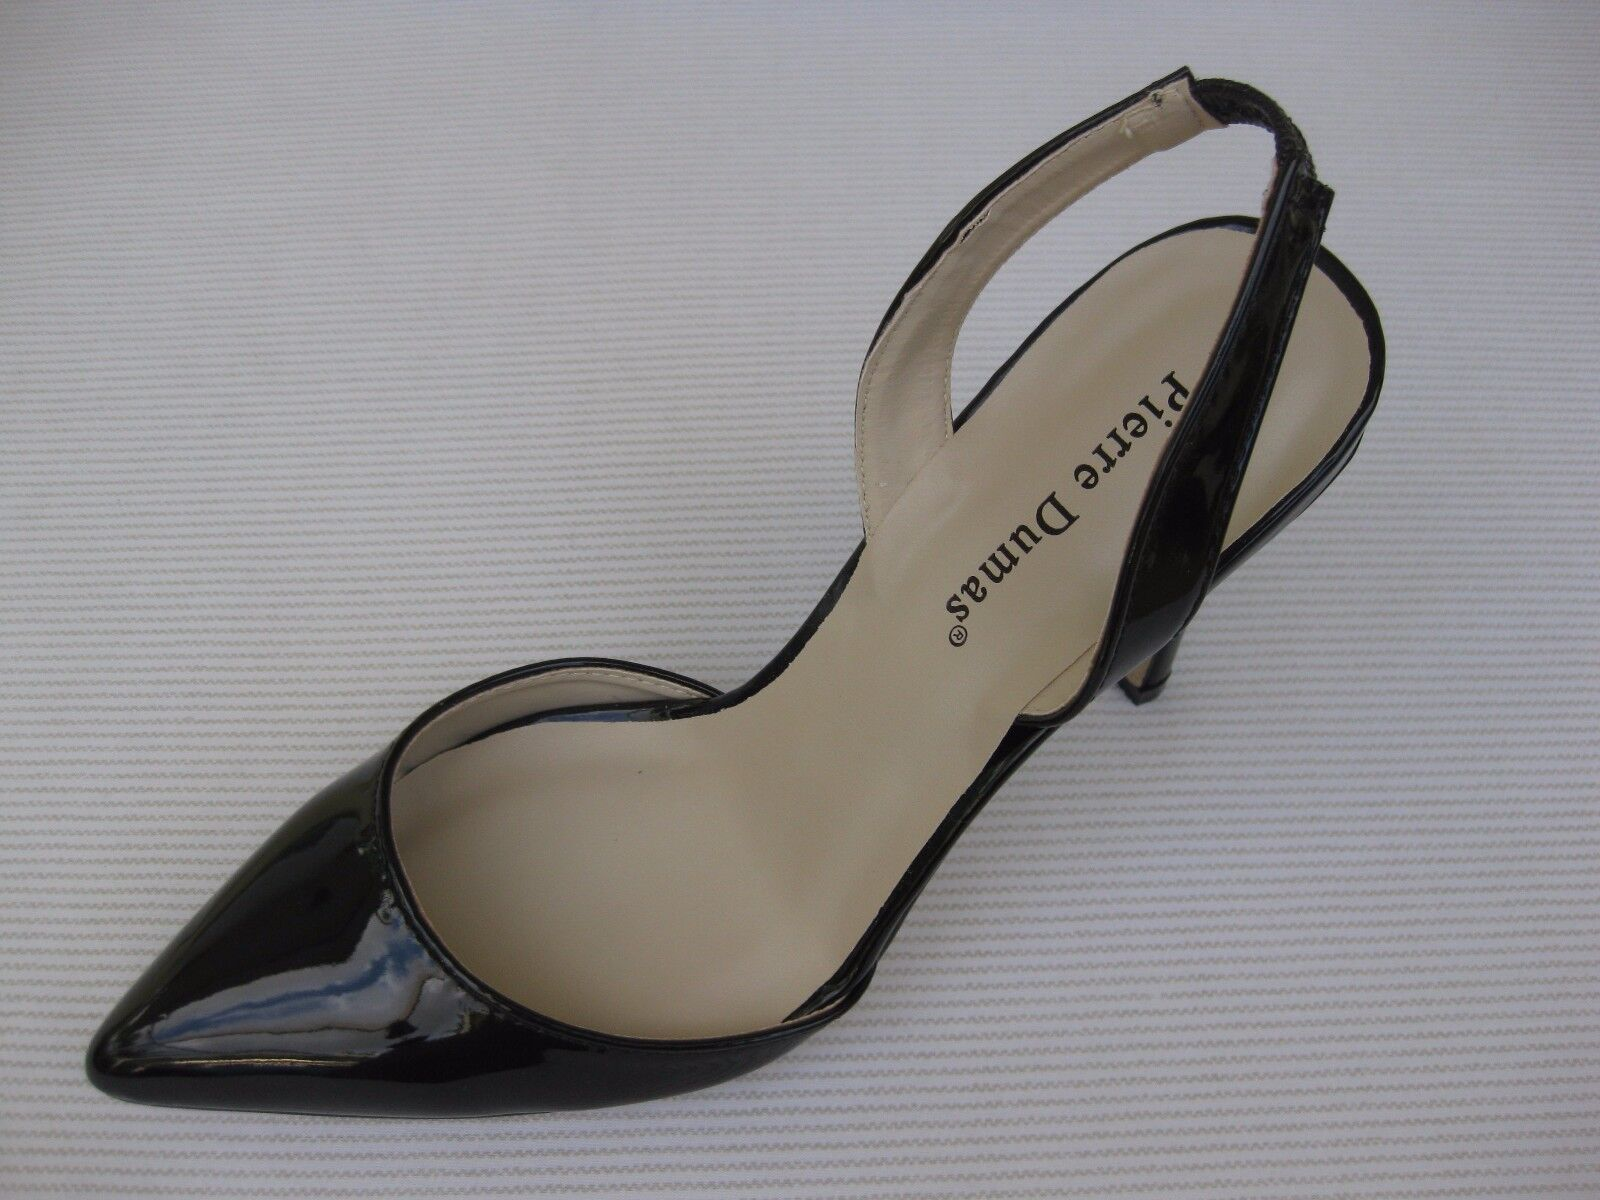 Pierre Dumas Womens Black Shoes NEW $52 Cherry-4 Black Womens Patent D'Orsay Sling 9 M 61ed17